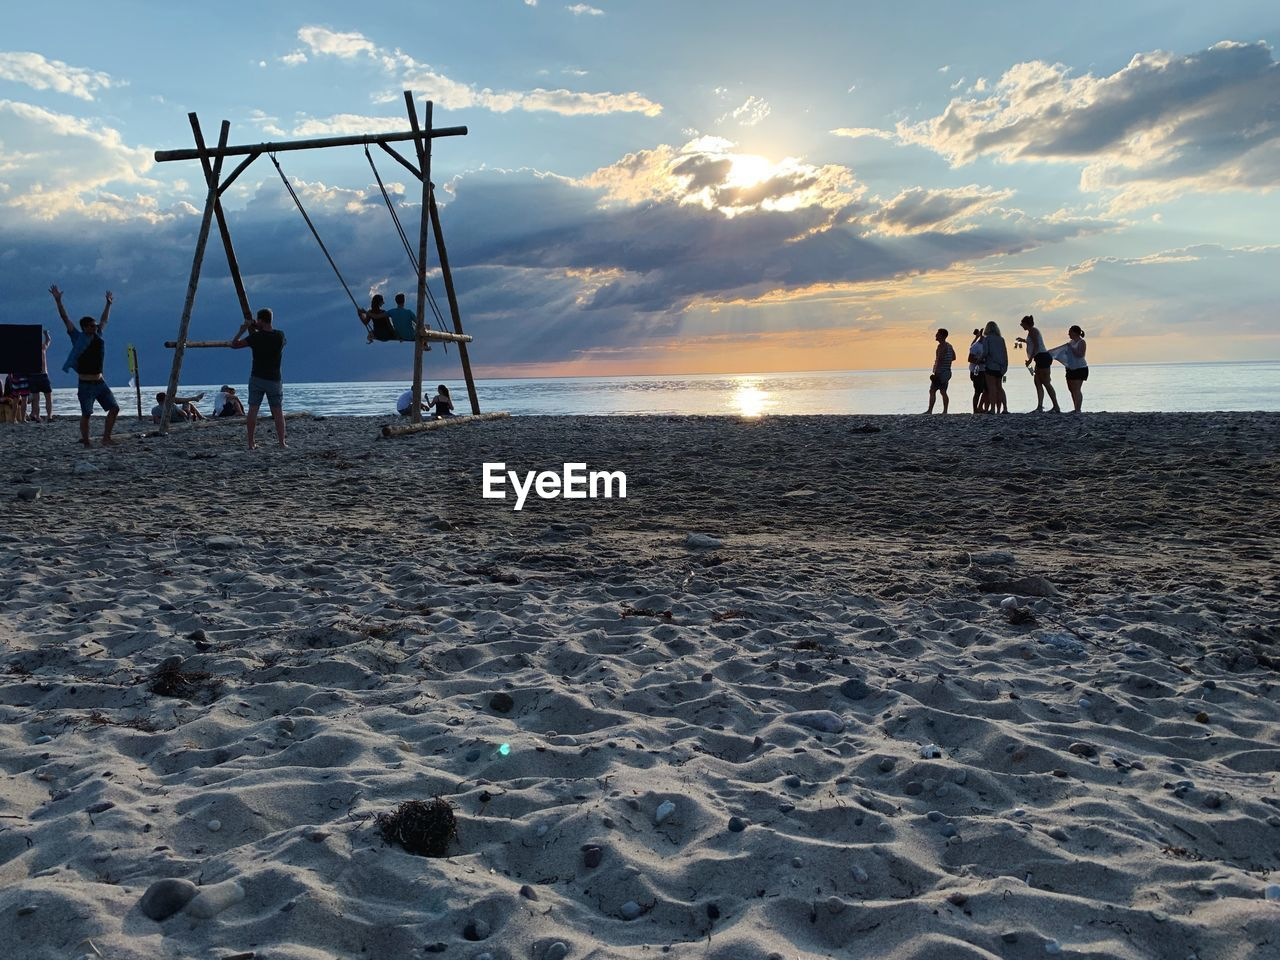 sky, beach, land, group of people, sea, water, sunset, real people, cloud - sky, beauty in nature, men, scenics - nature, nature, leisure activity, lifestyles, horizon, horizon over water, sand, people